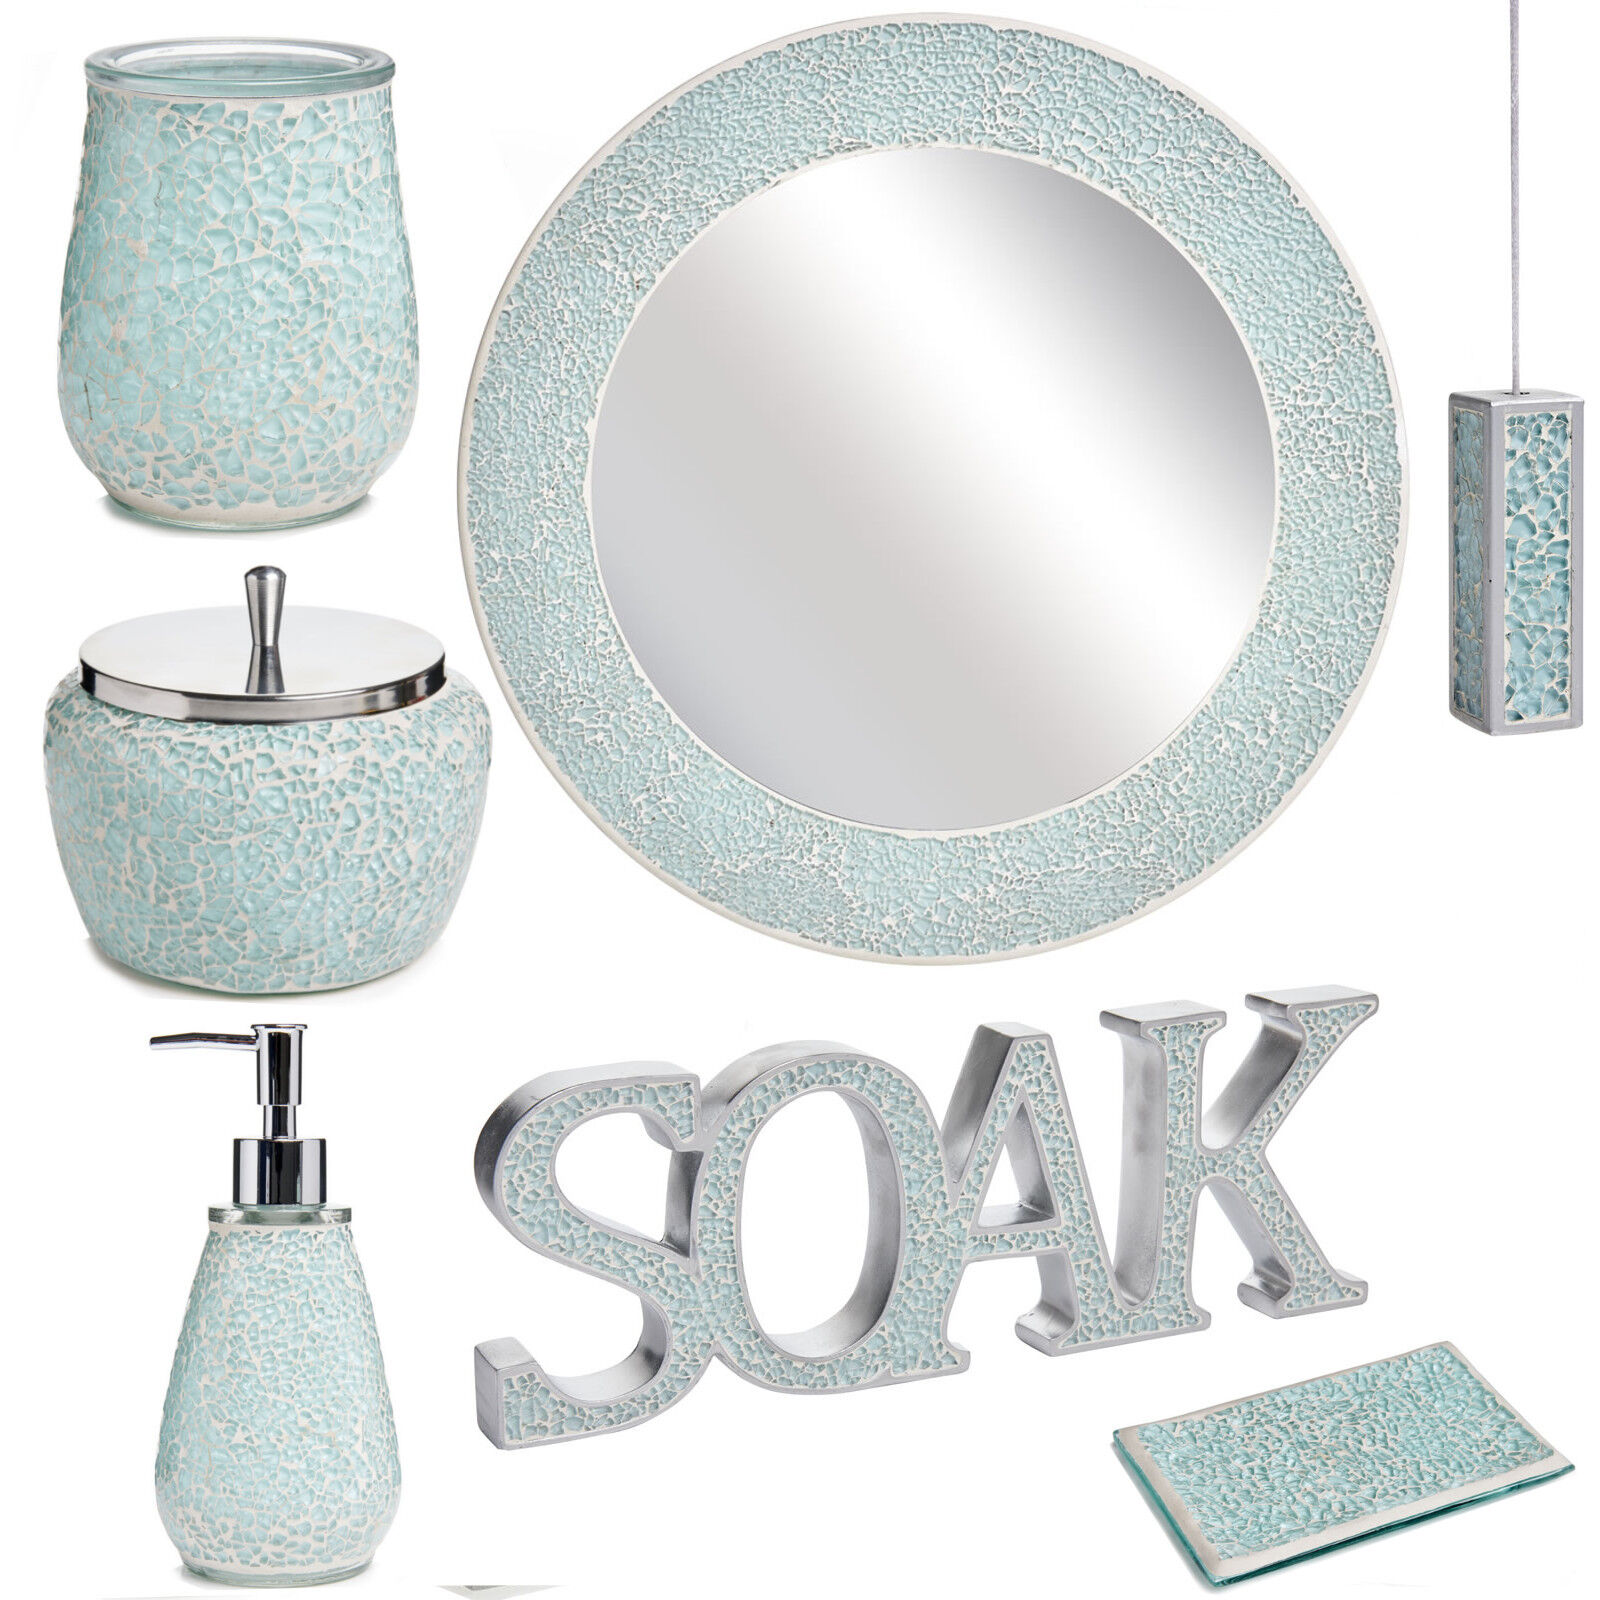 Aqua sparkle mosaic bathroom accessories set ebay for Silver crackle glass bathroom accessories